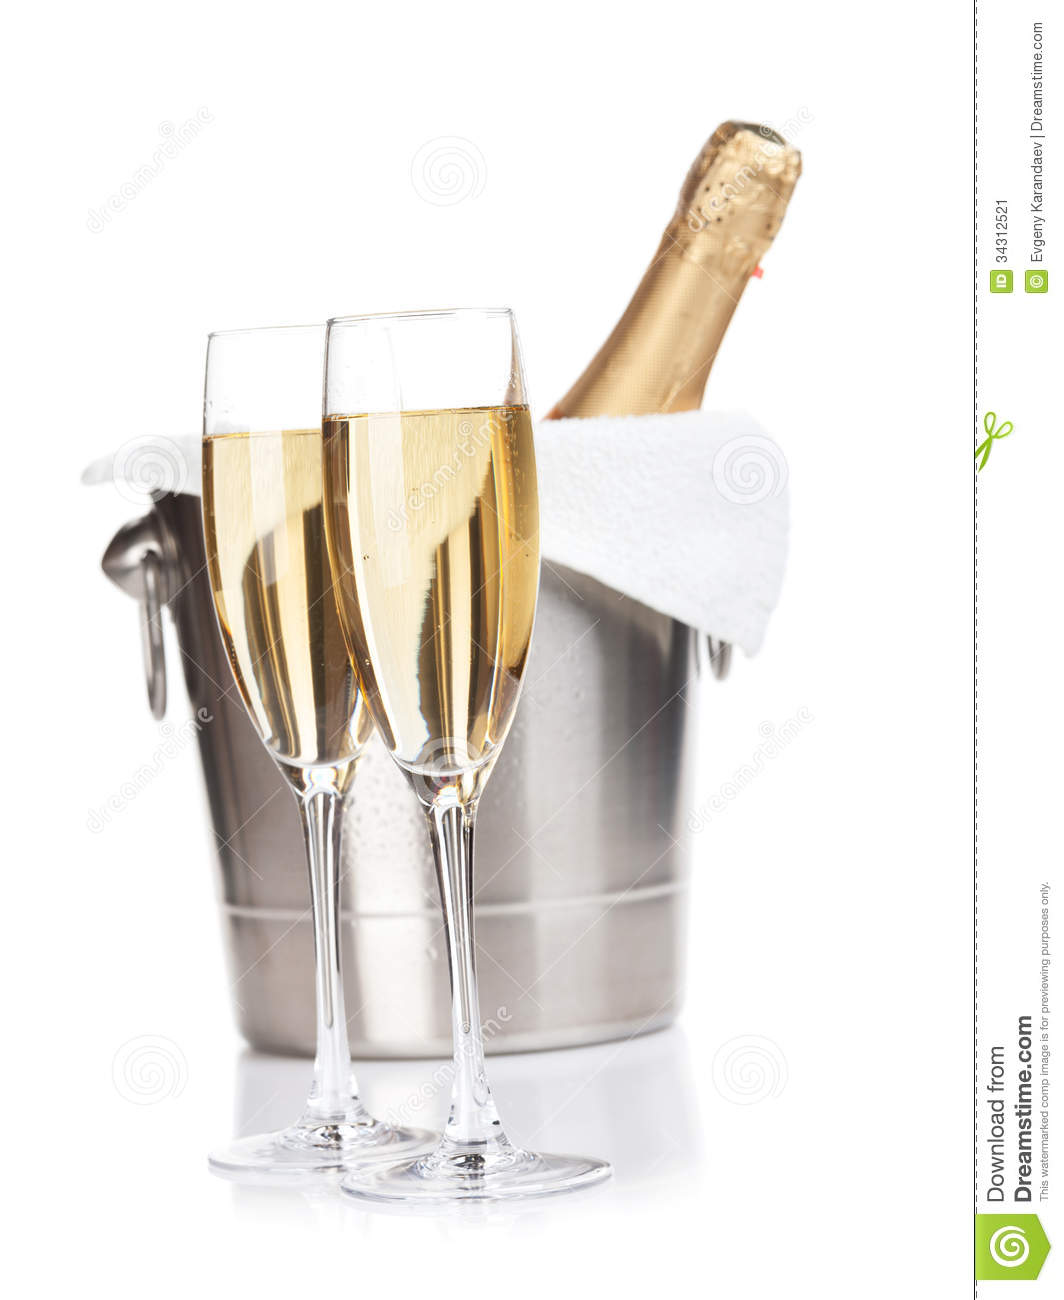 Champagne Glasses And Bottle In Bucket Stock Image  Image: 34312521